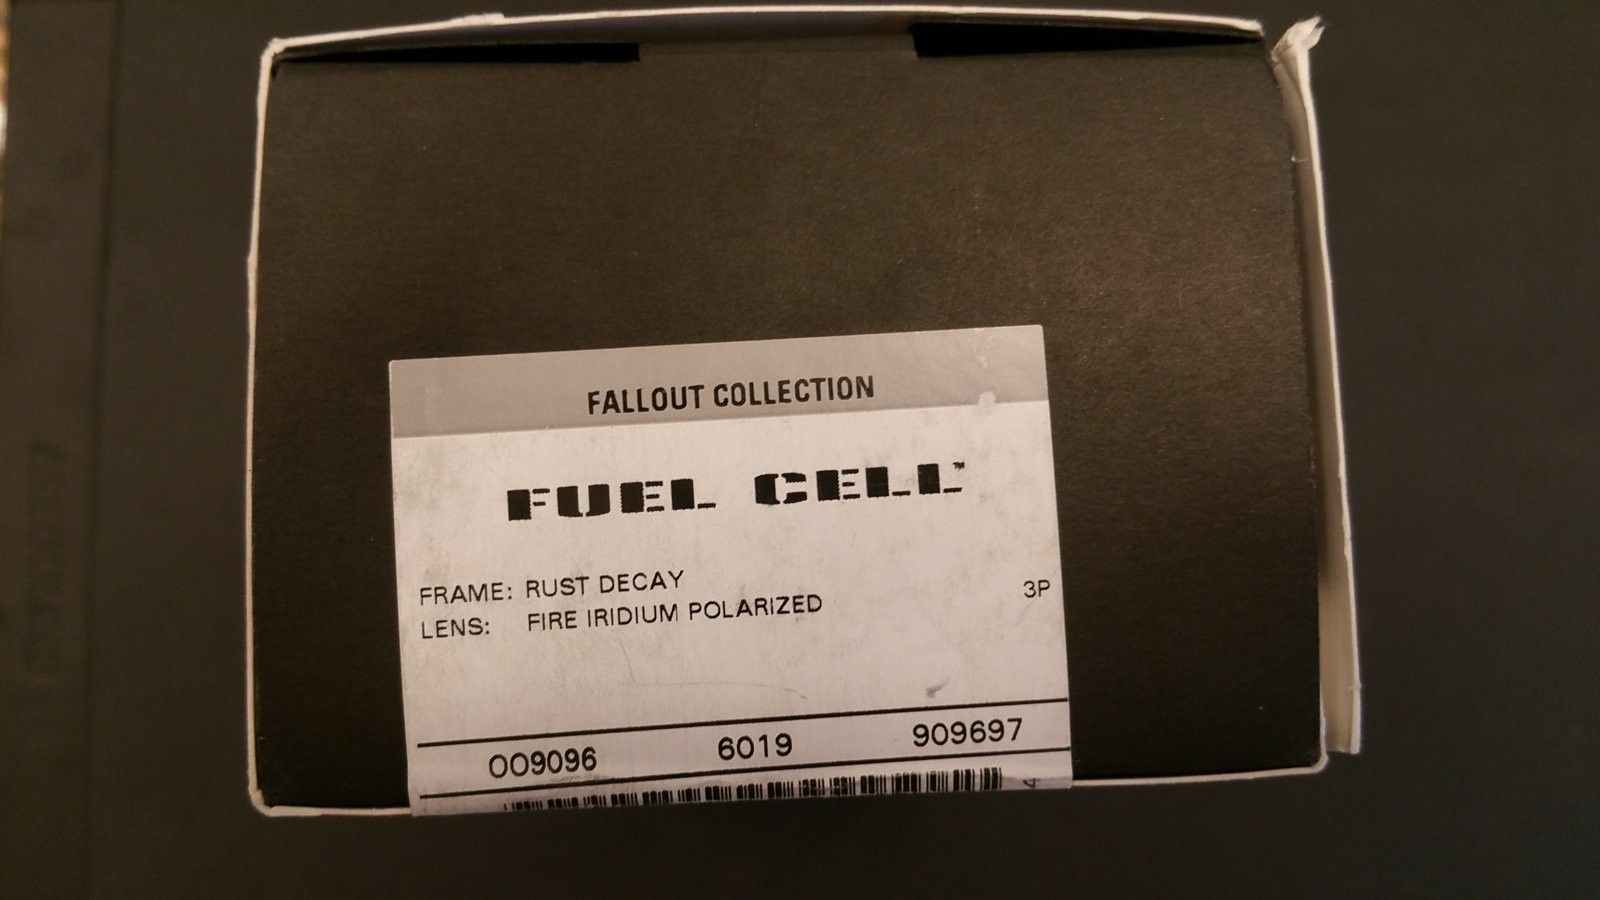 Rust decay fuel cell - 20160319_140550.jpg